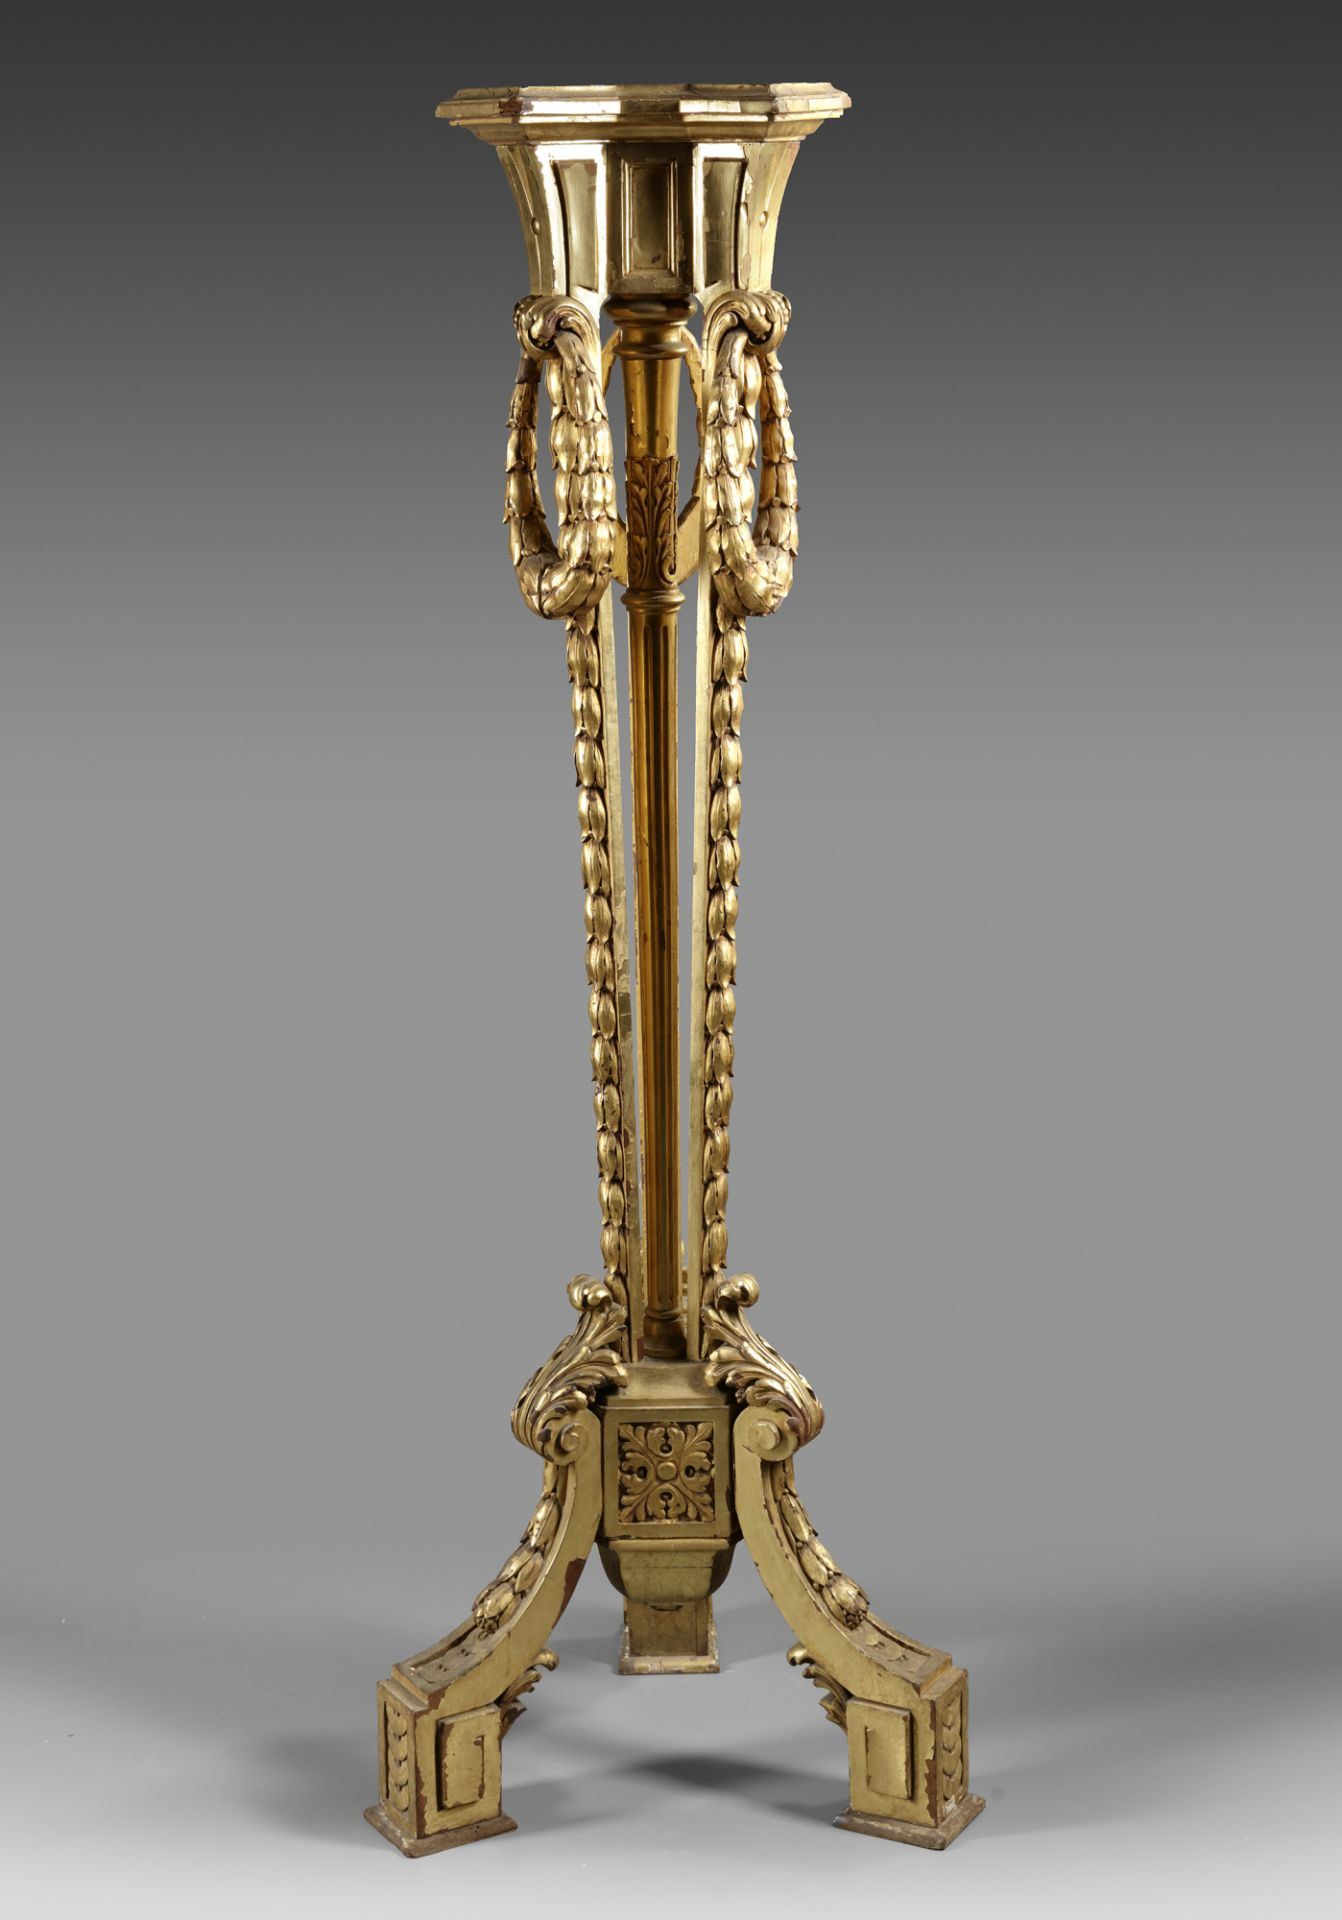 A FRENCH TRIPOD STAND, NAPOLEON III STYLE, LATE 19TH CENTURY - Image 2 of 2